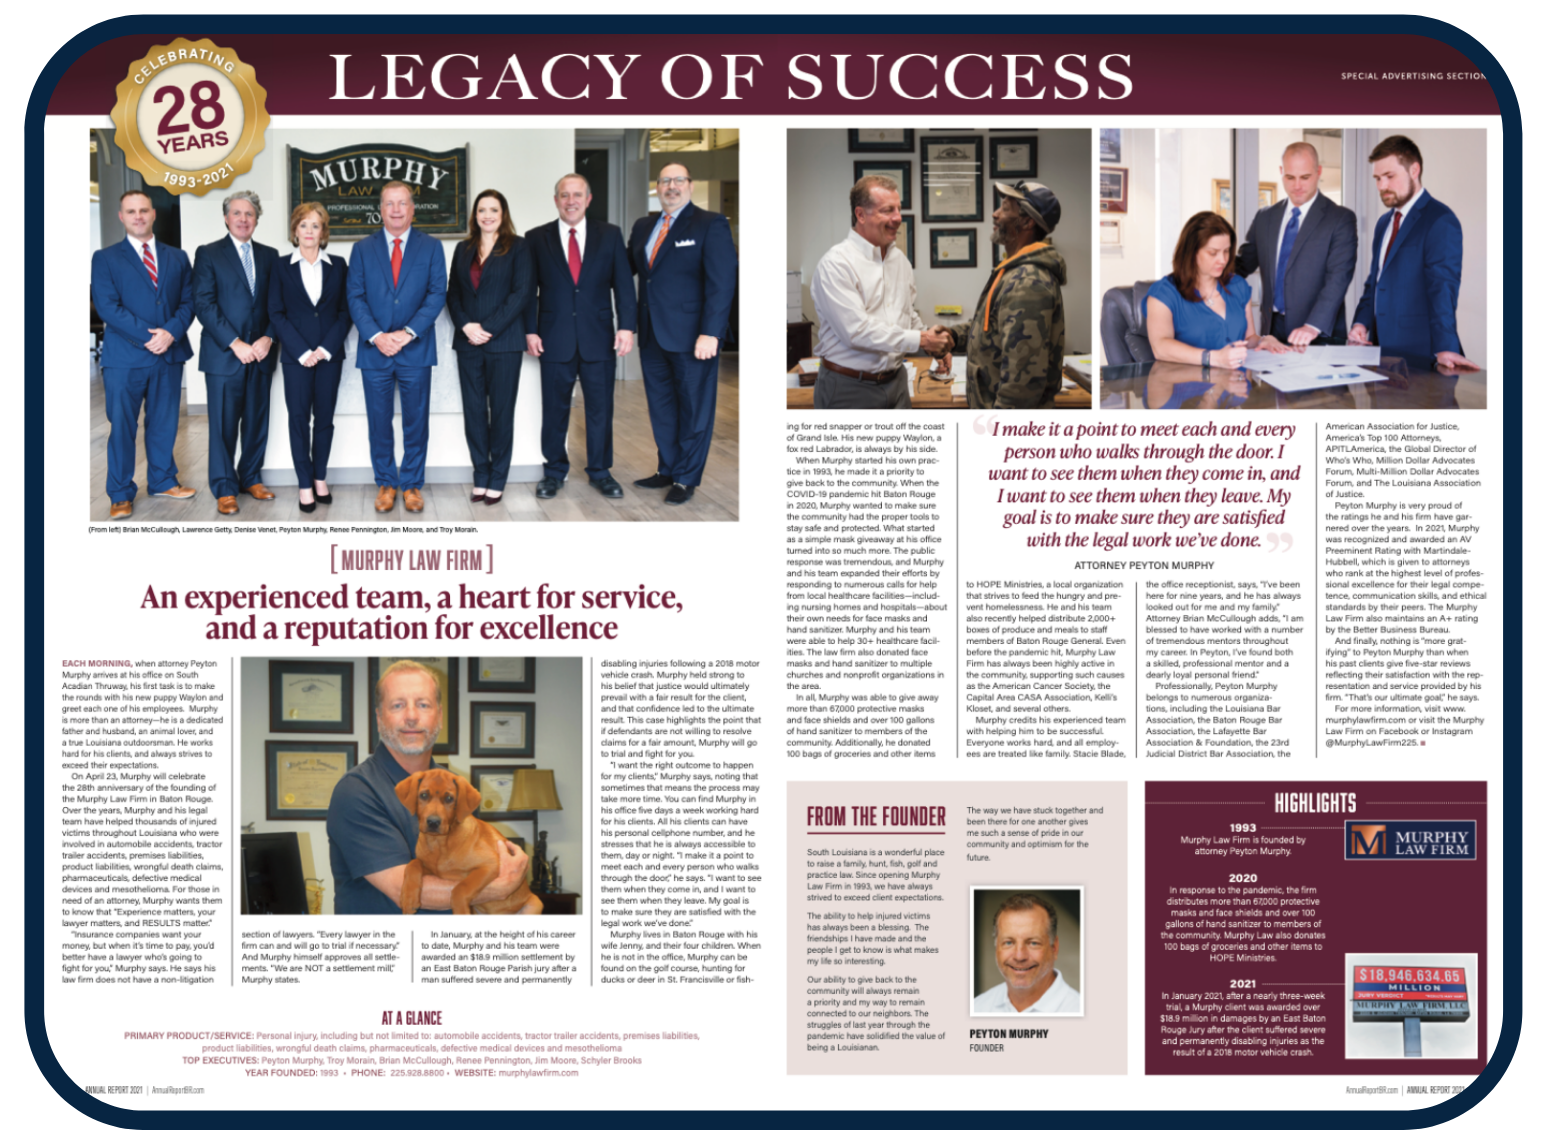 Murphy Law Firm's Legal Legacy of Success